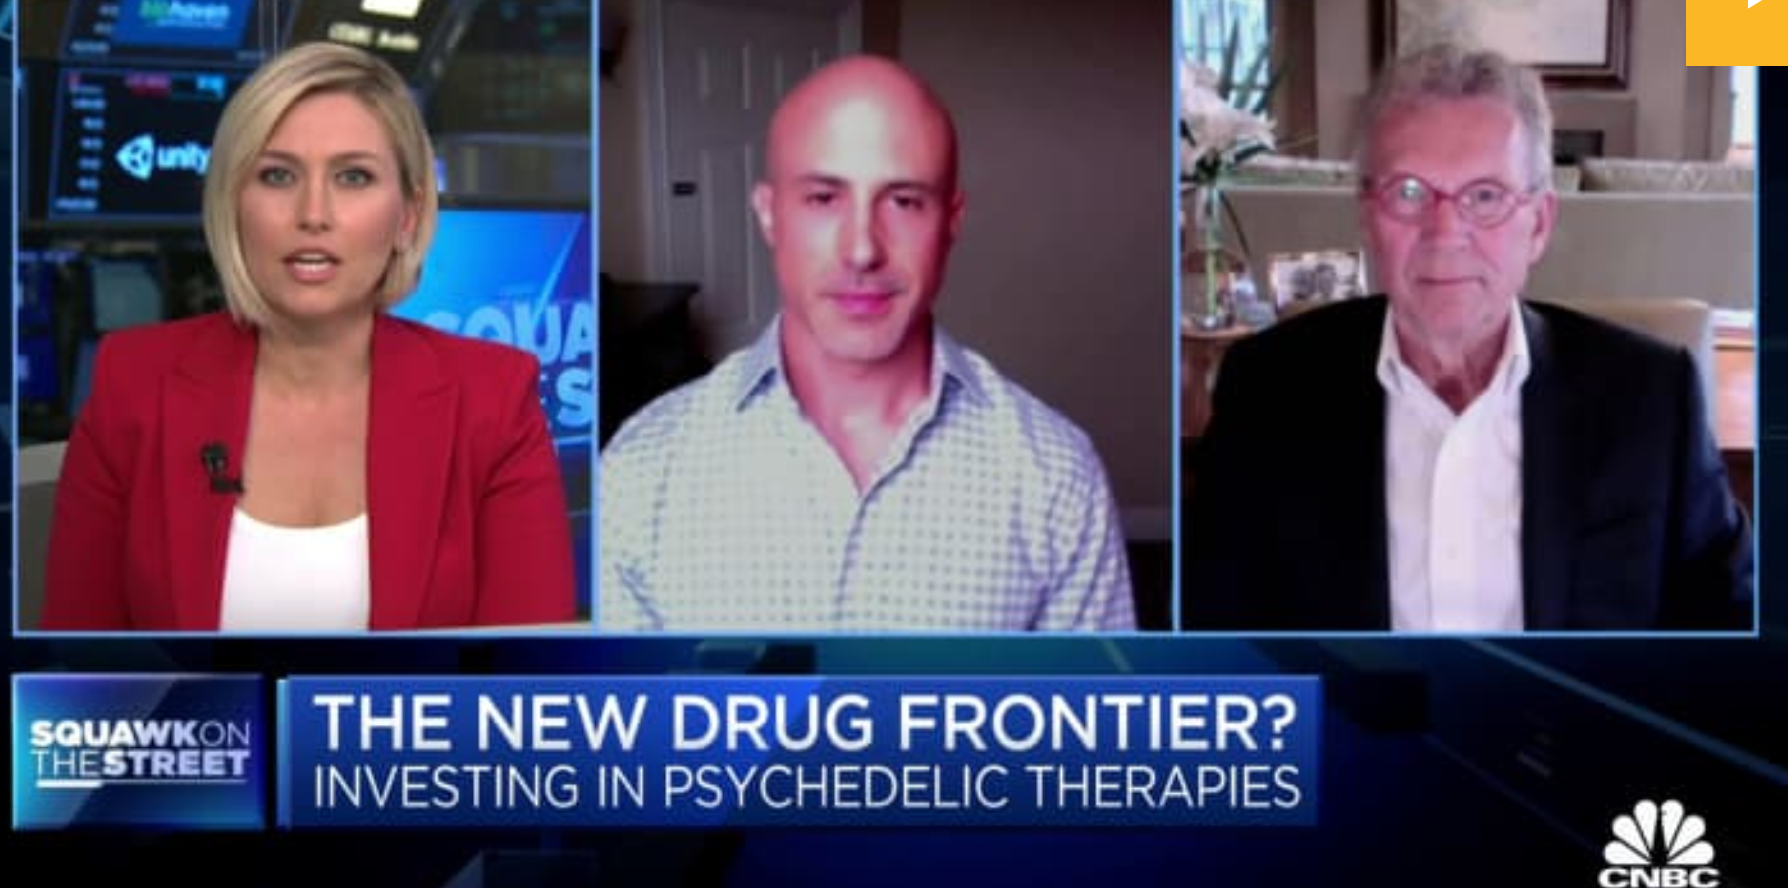 CNBC: The Case for Legalizing and Investing in Psychedelics